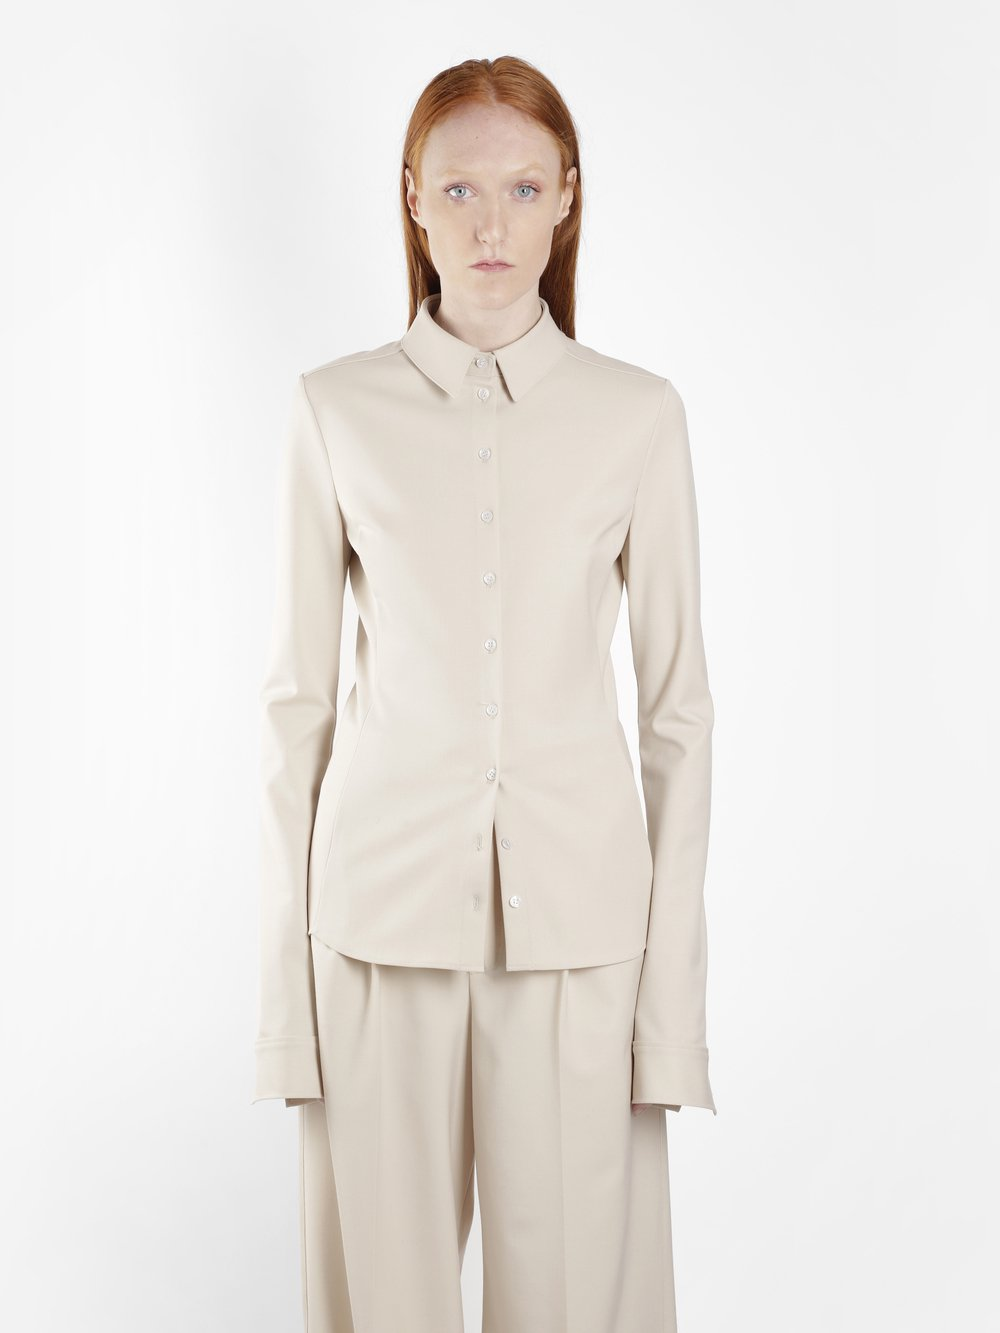 KWAIDAN EDITIONS WOMEN'S BEIGE SLIM SHIRT